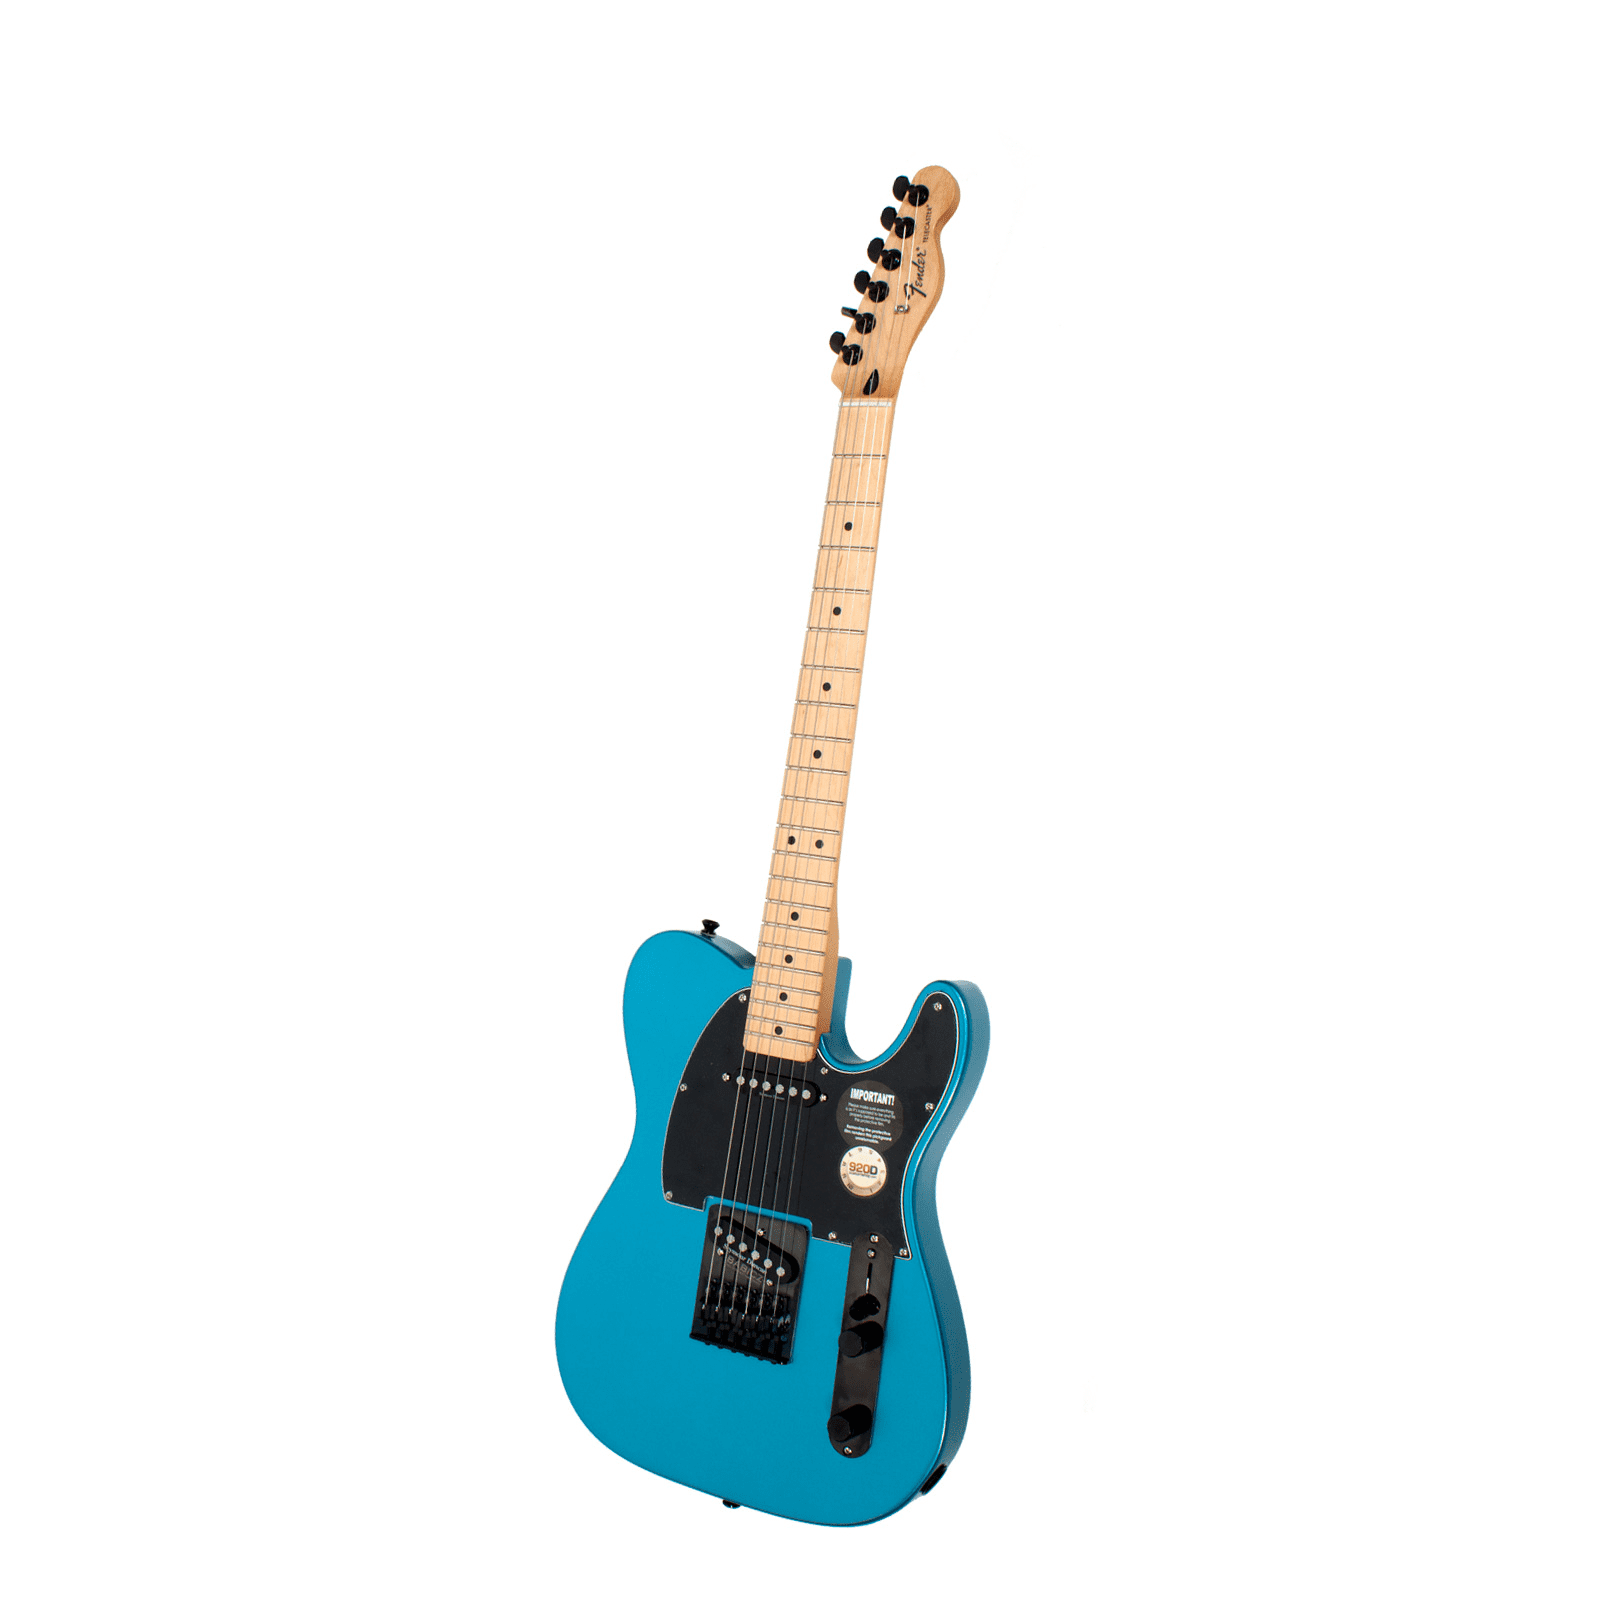 Fender Telecaster Tele Mod Electric Guitar Seymour Duncan SSL-4 Quarter Pound by